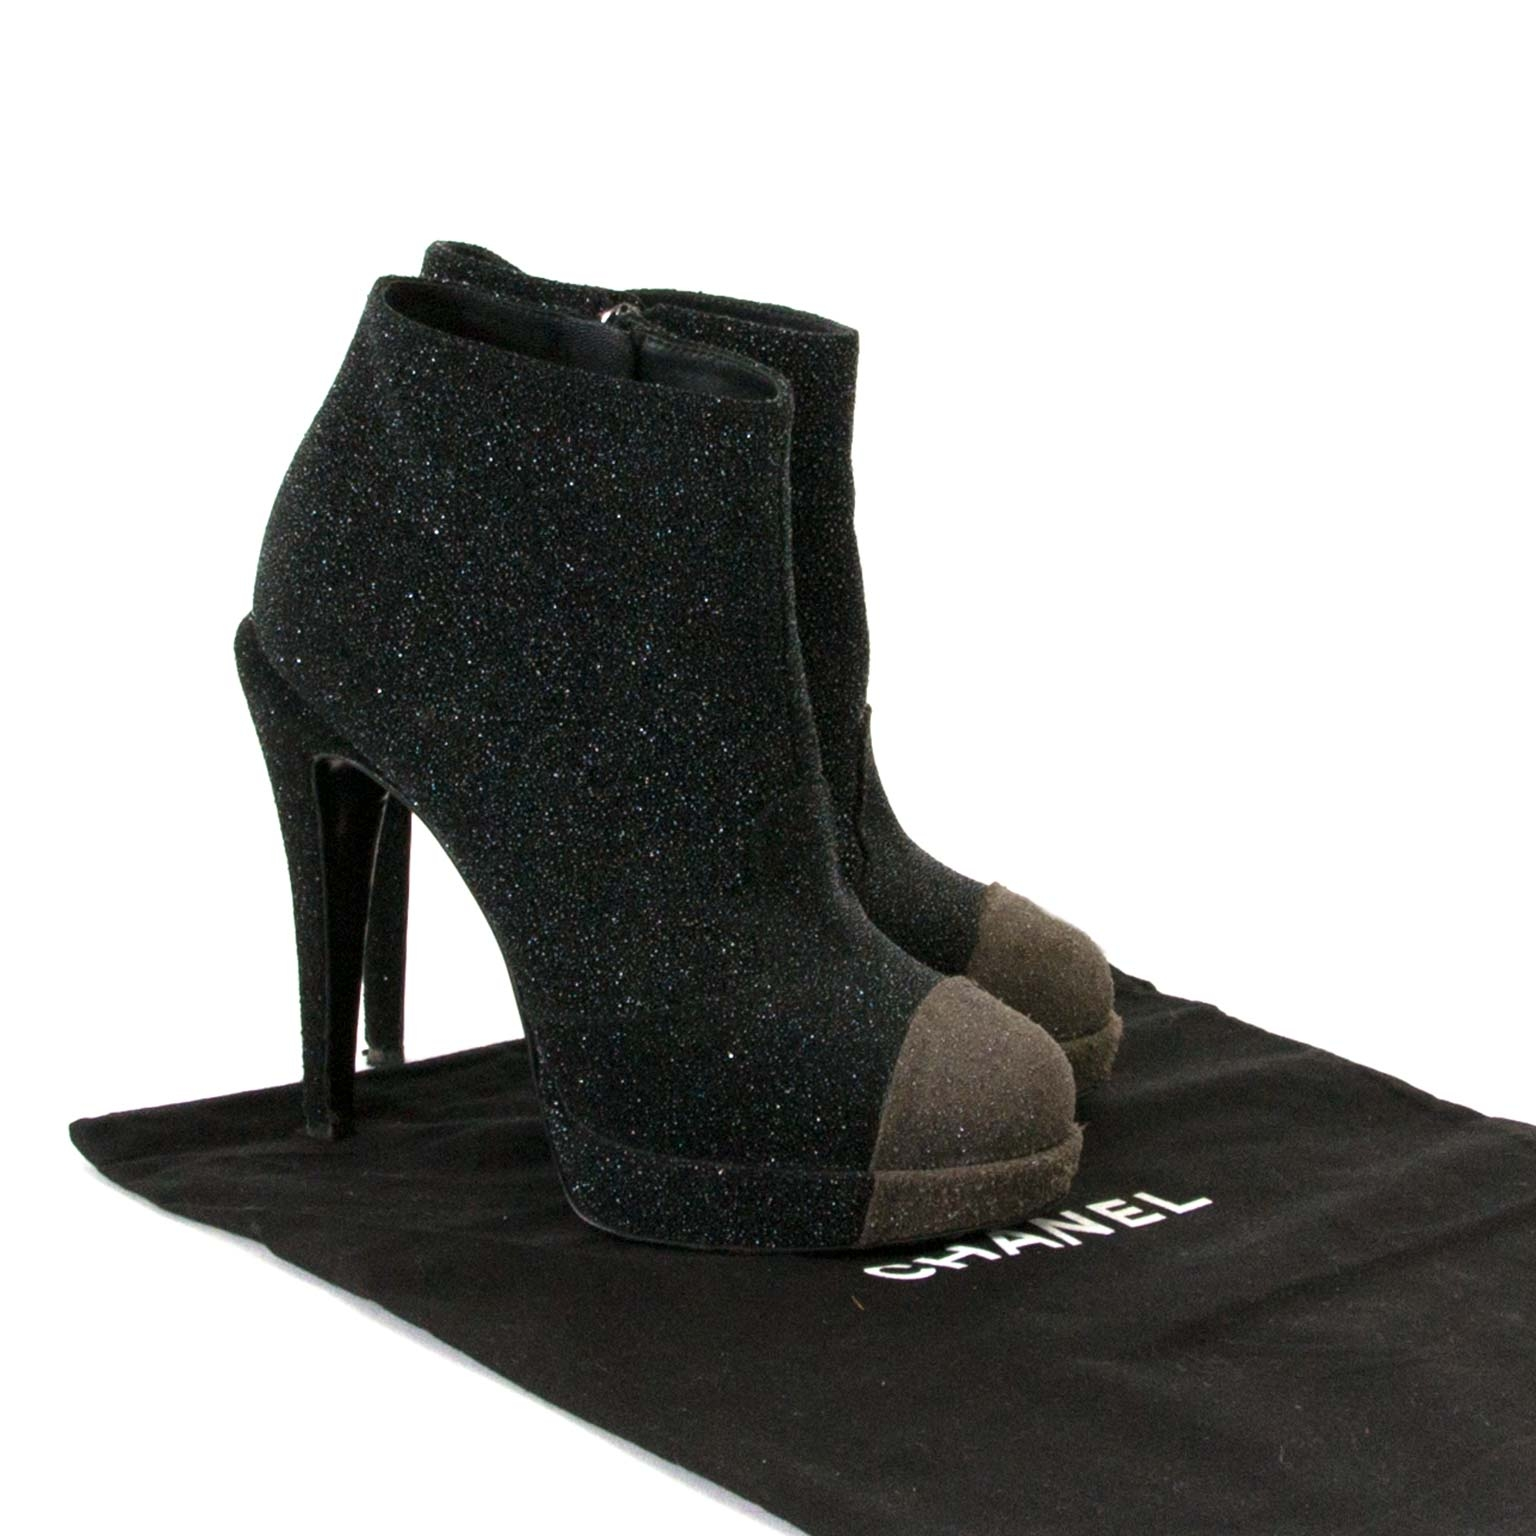 528a42671b82 ... Chanel Black Sparkle Ankle Boots - size 36 now for sale at labellov  vintage fashion webshop